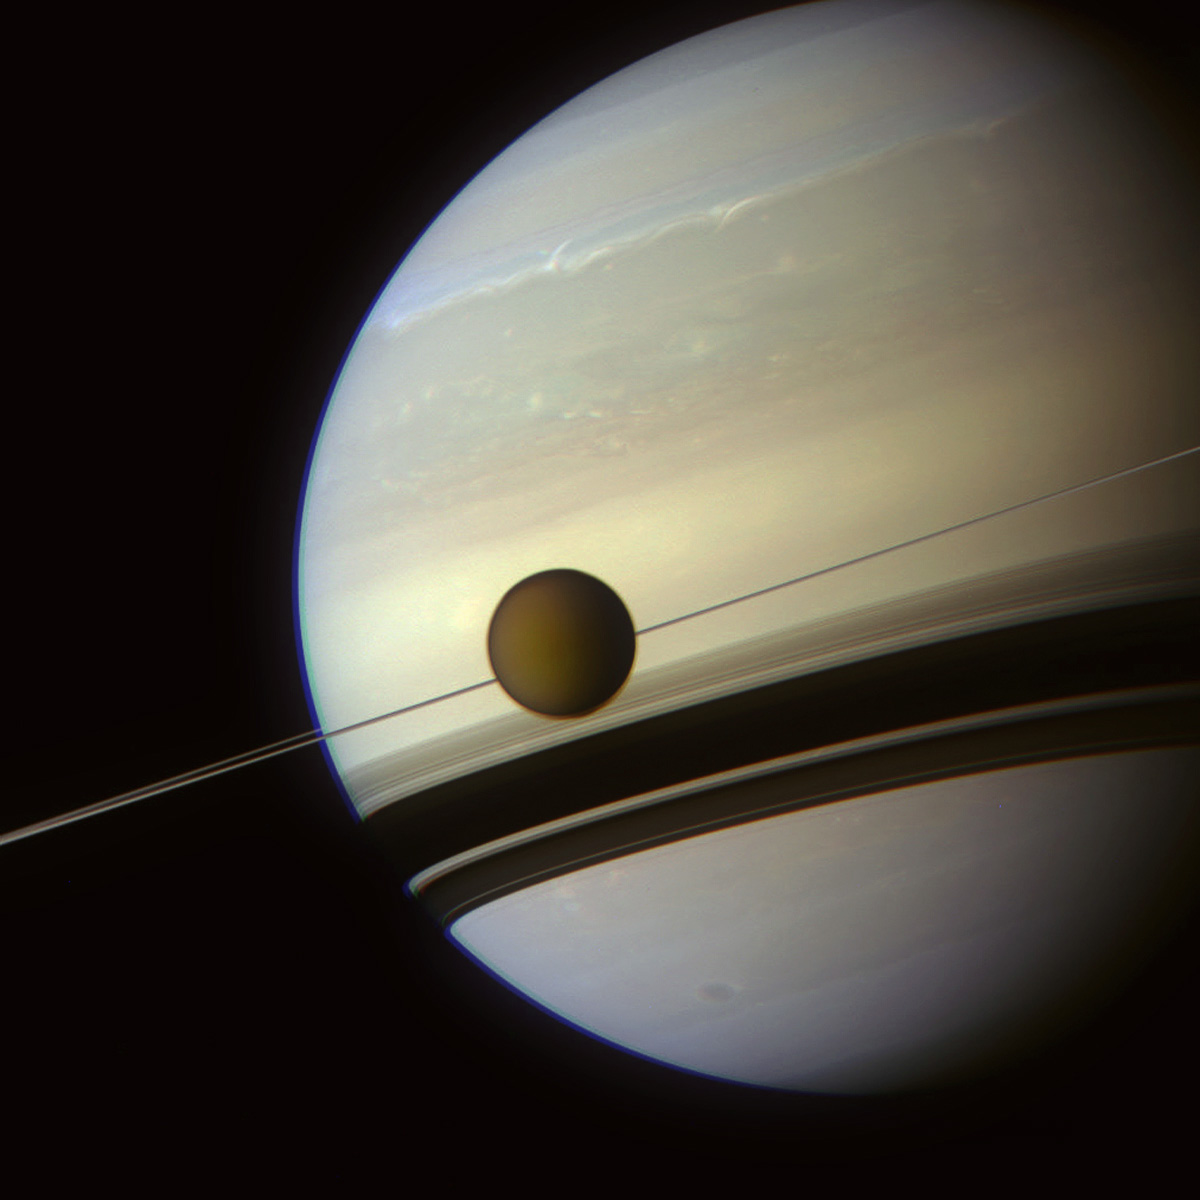 Orbiter Ch Space News In The Shadows Of Saturn S Rings